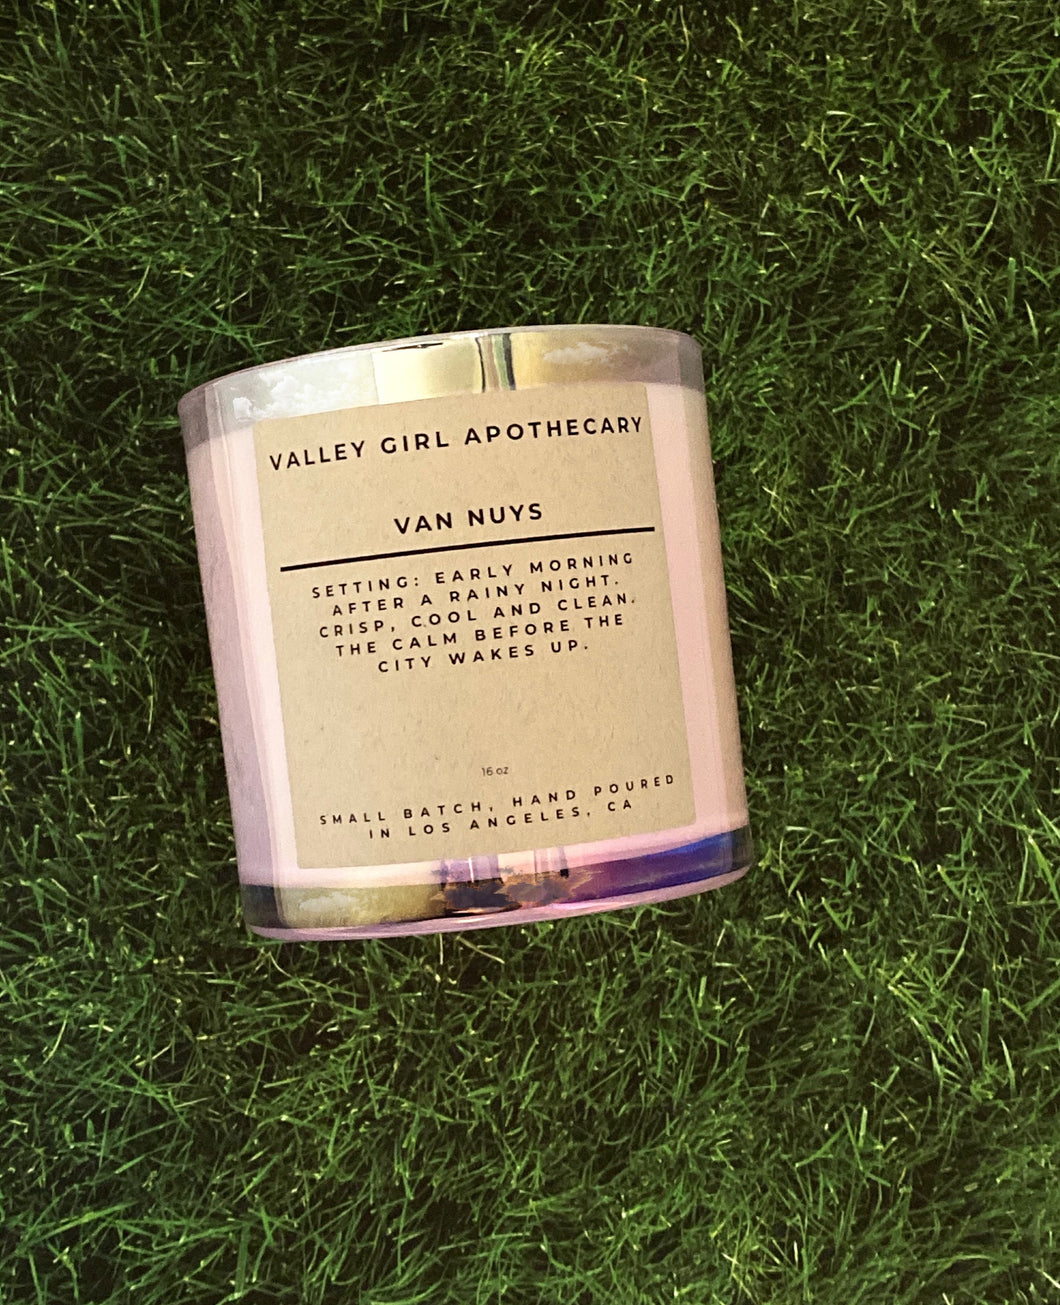 No. 10 - Van Nuys - Soy Wax Candle - Rainy Morning and Wet Grass